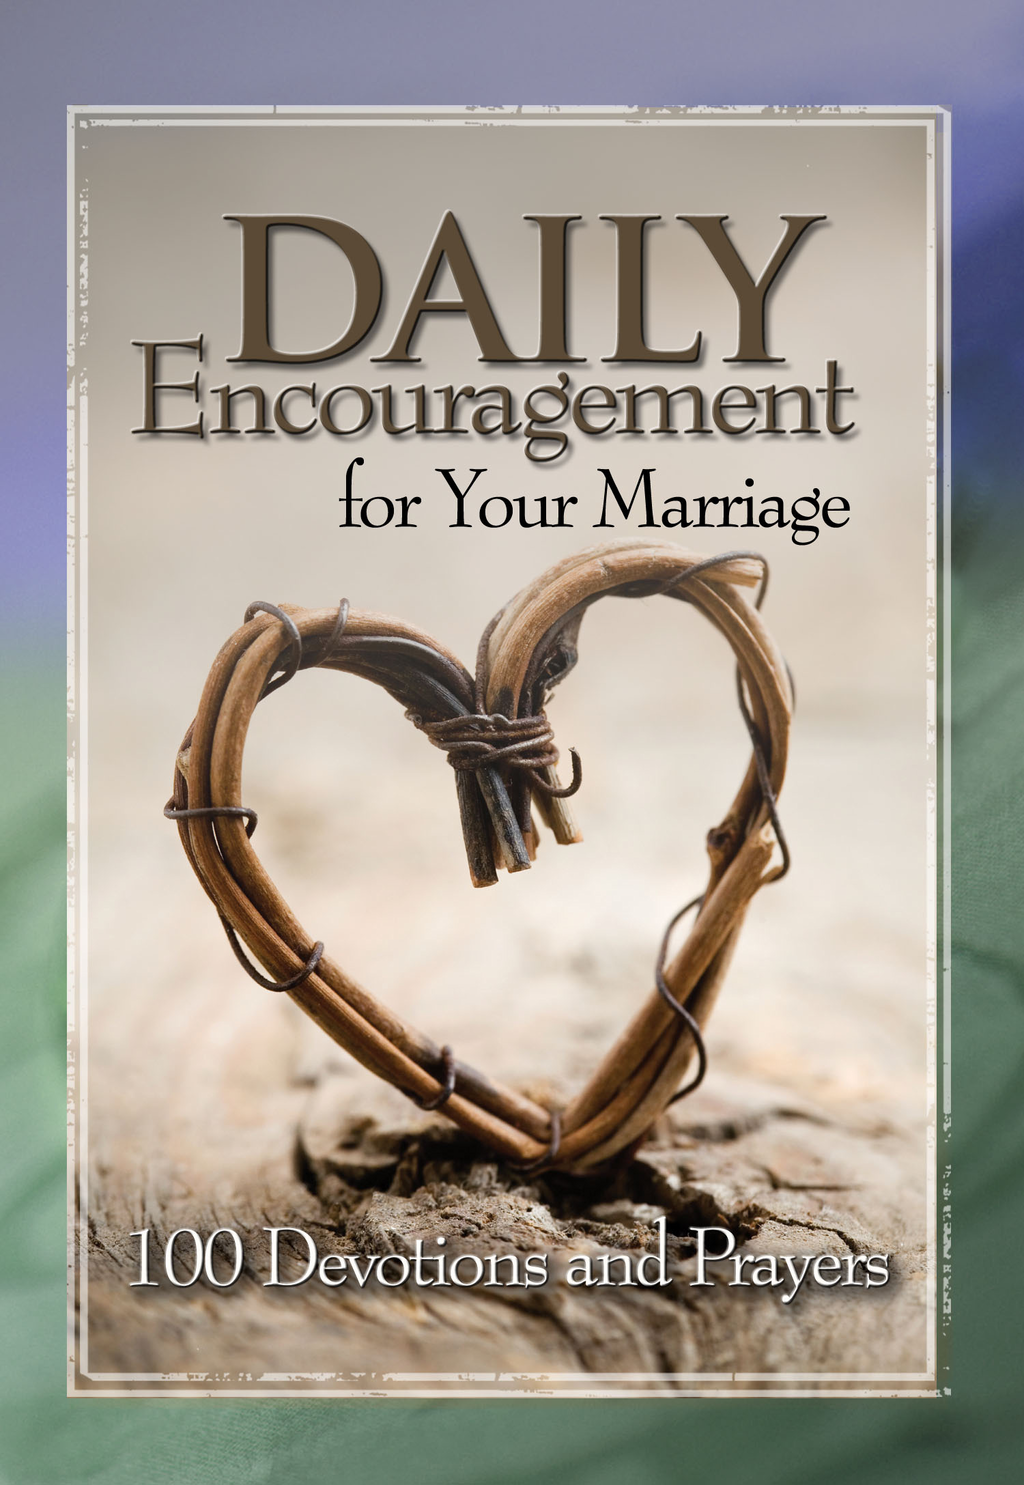 Alexander McCall Smith - Marriage: Daily Encouragement for Your Marriage